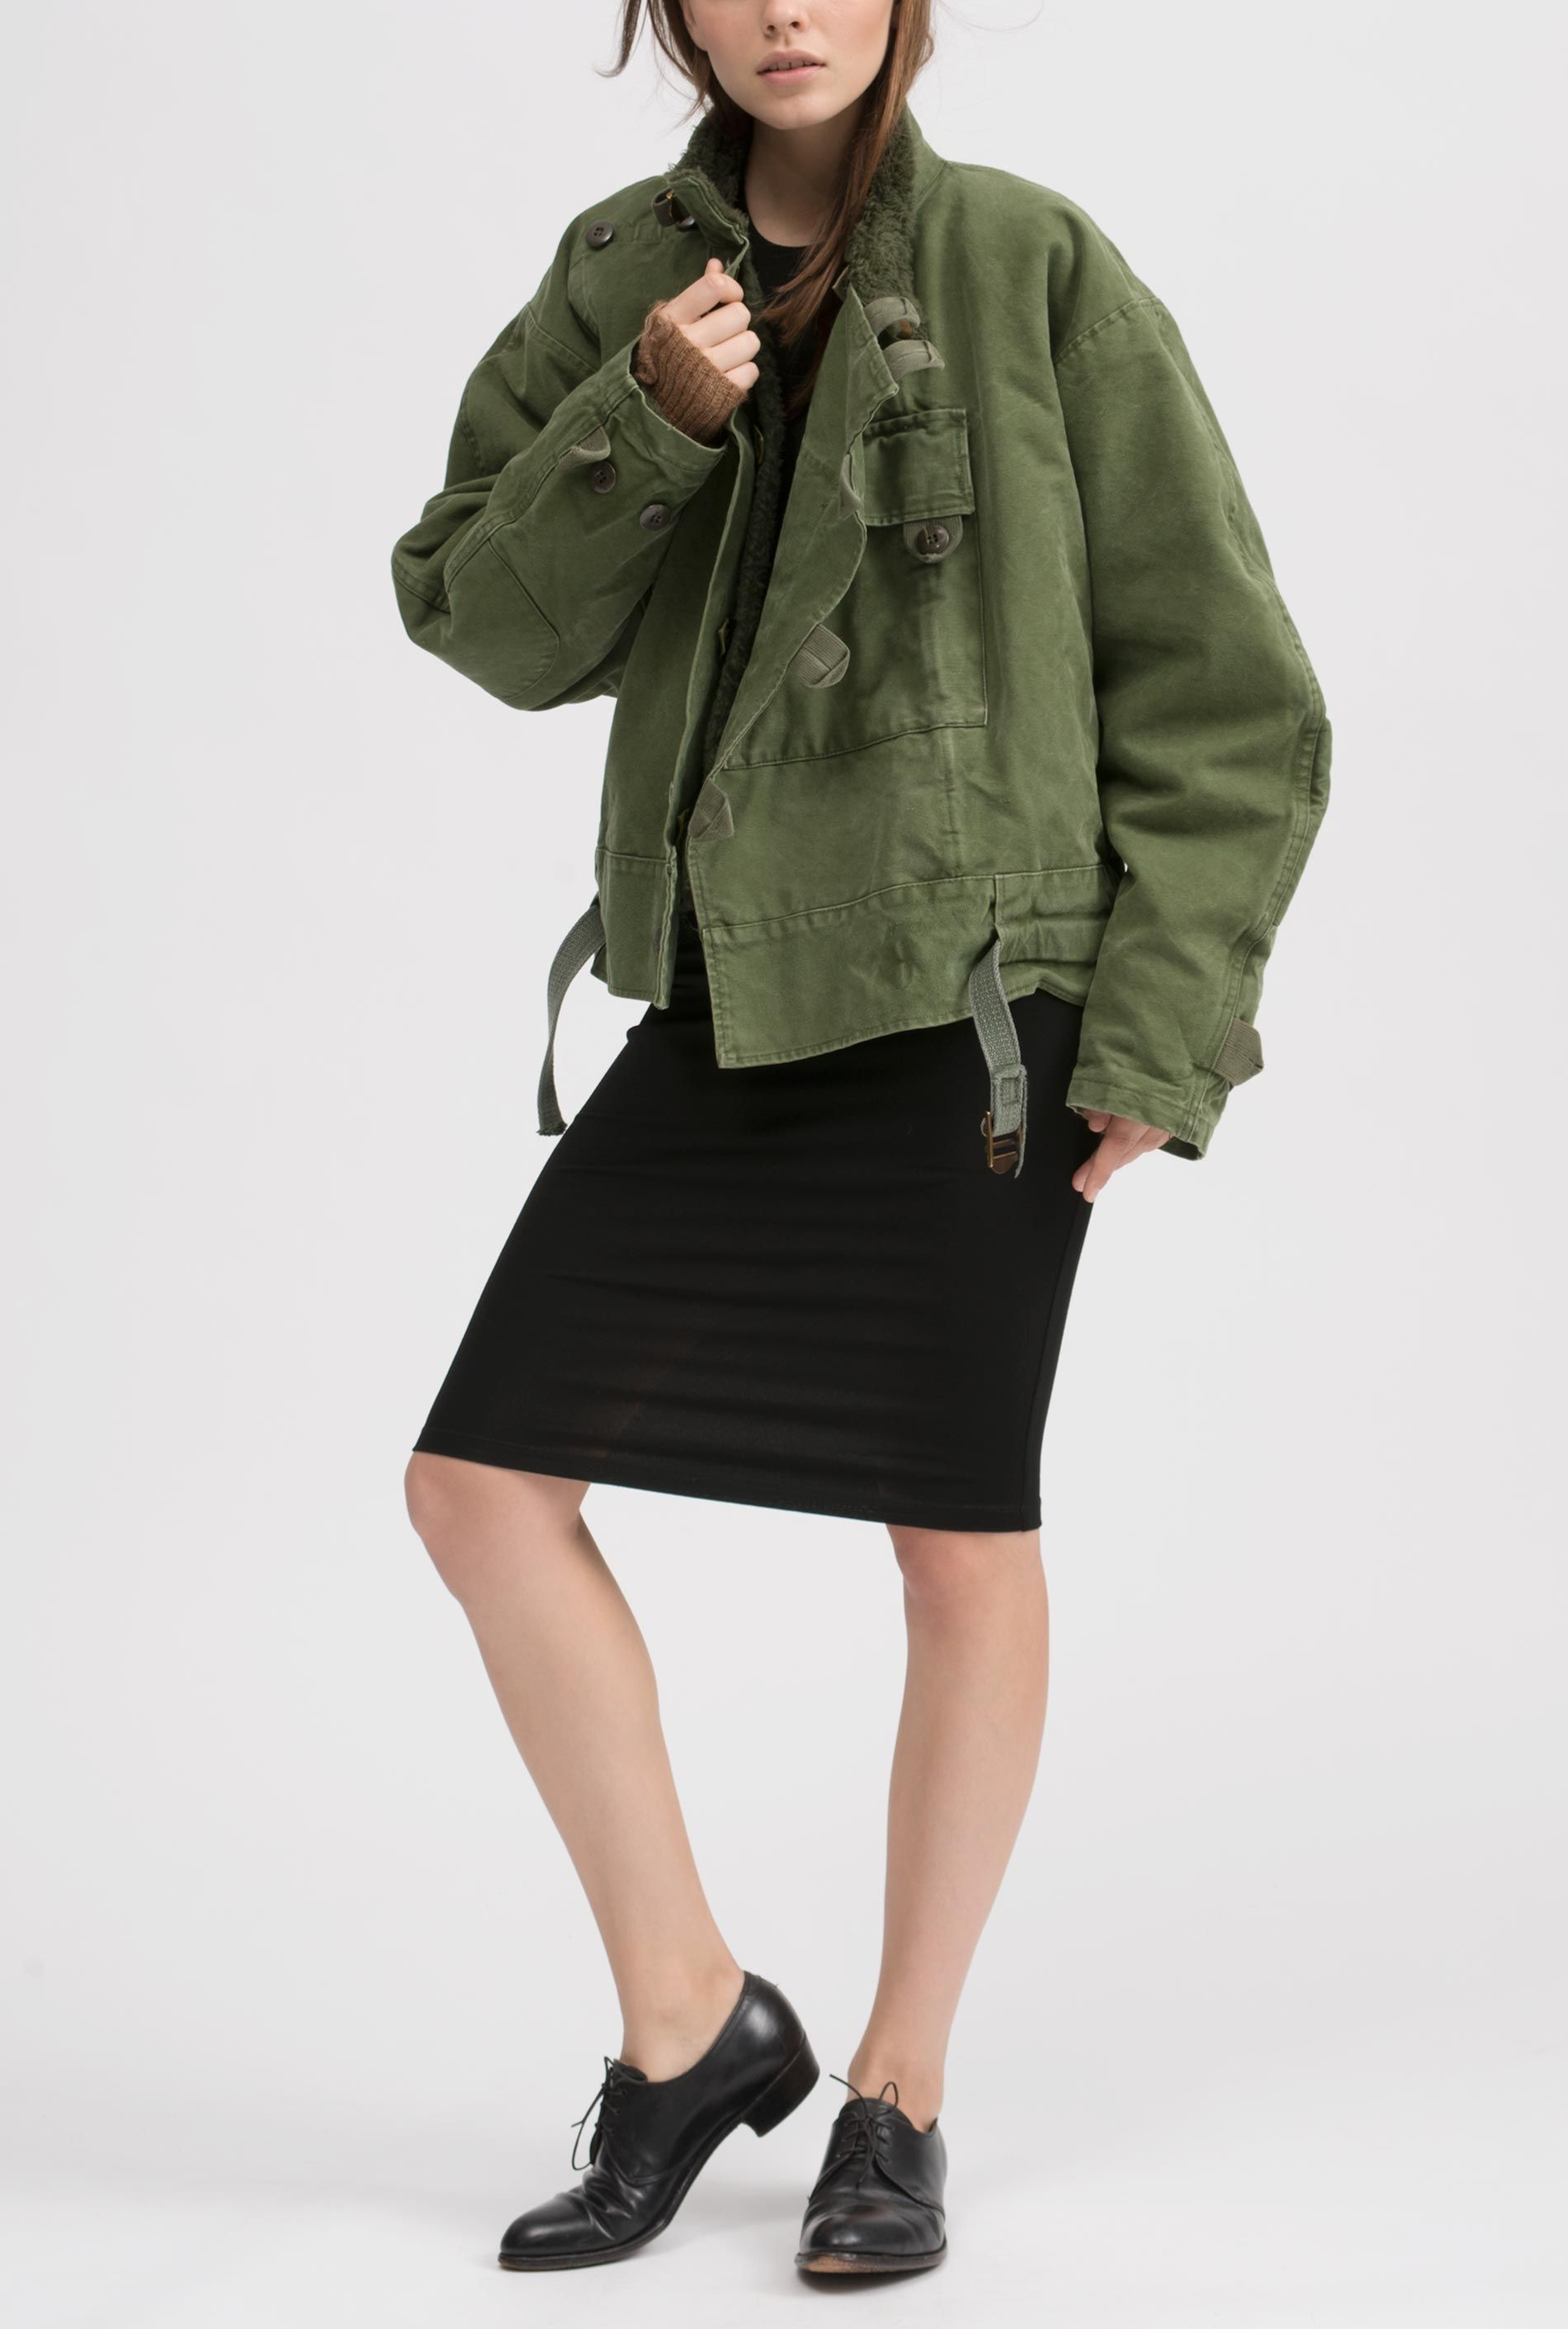 Pin By Guiomar Testa On Military Jackets Military Bomber Jacket Bomber Jacket [ 2822 x 1900 Pixel ]